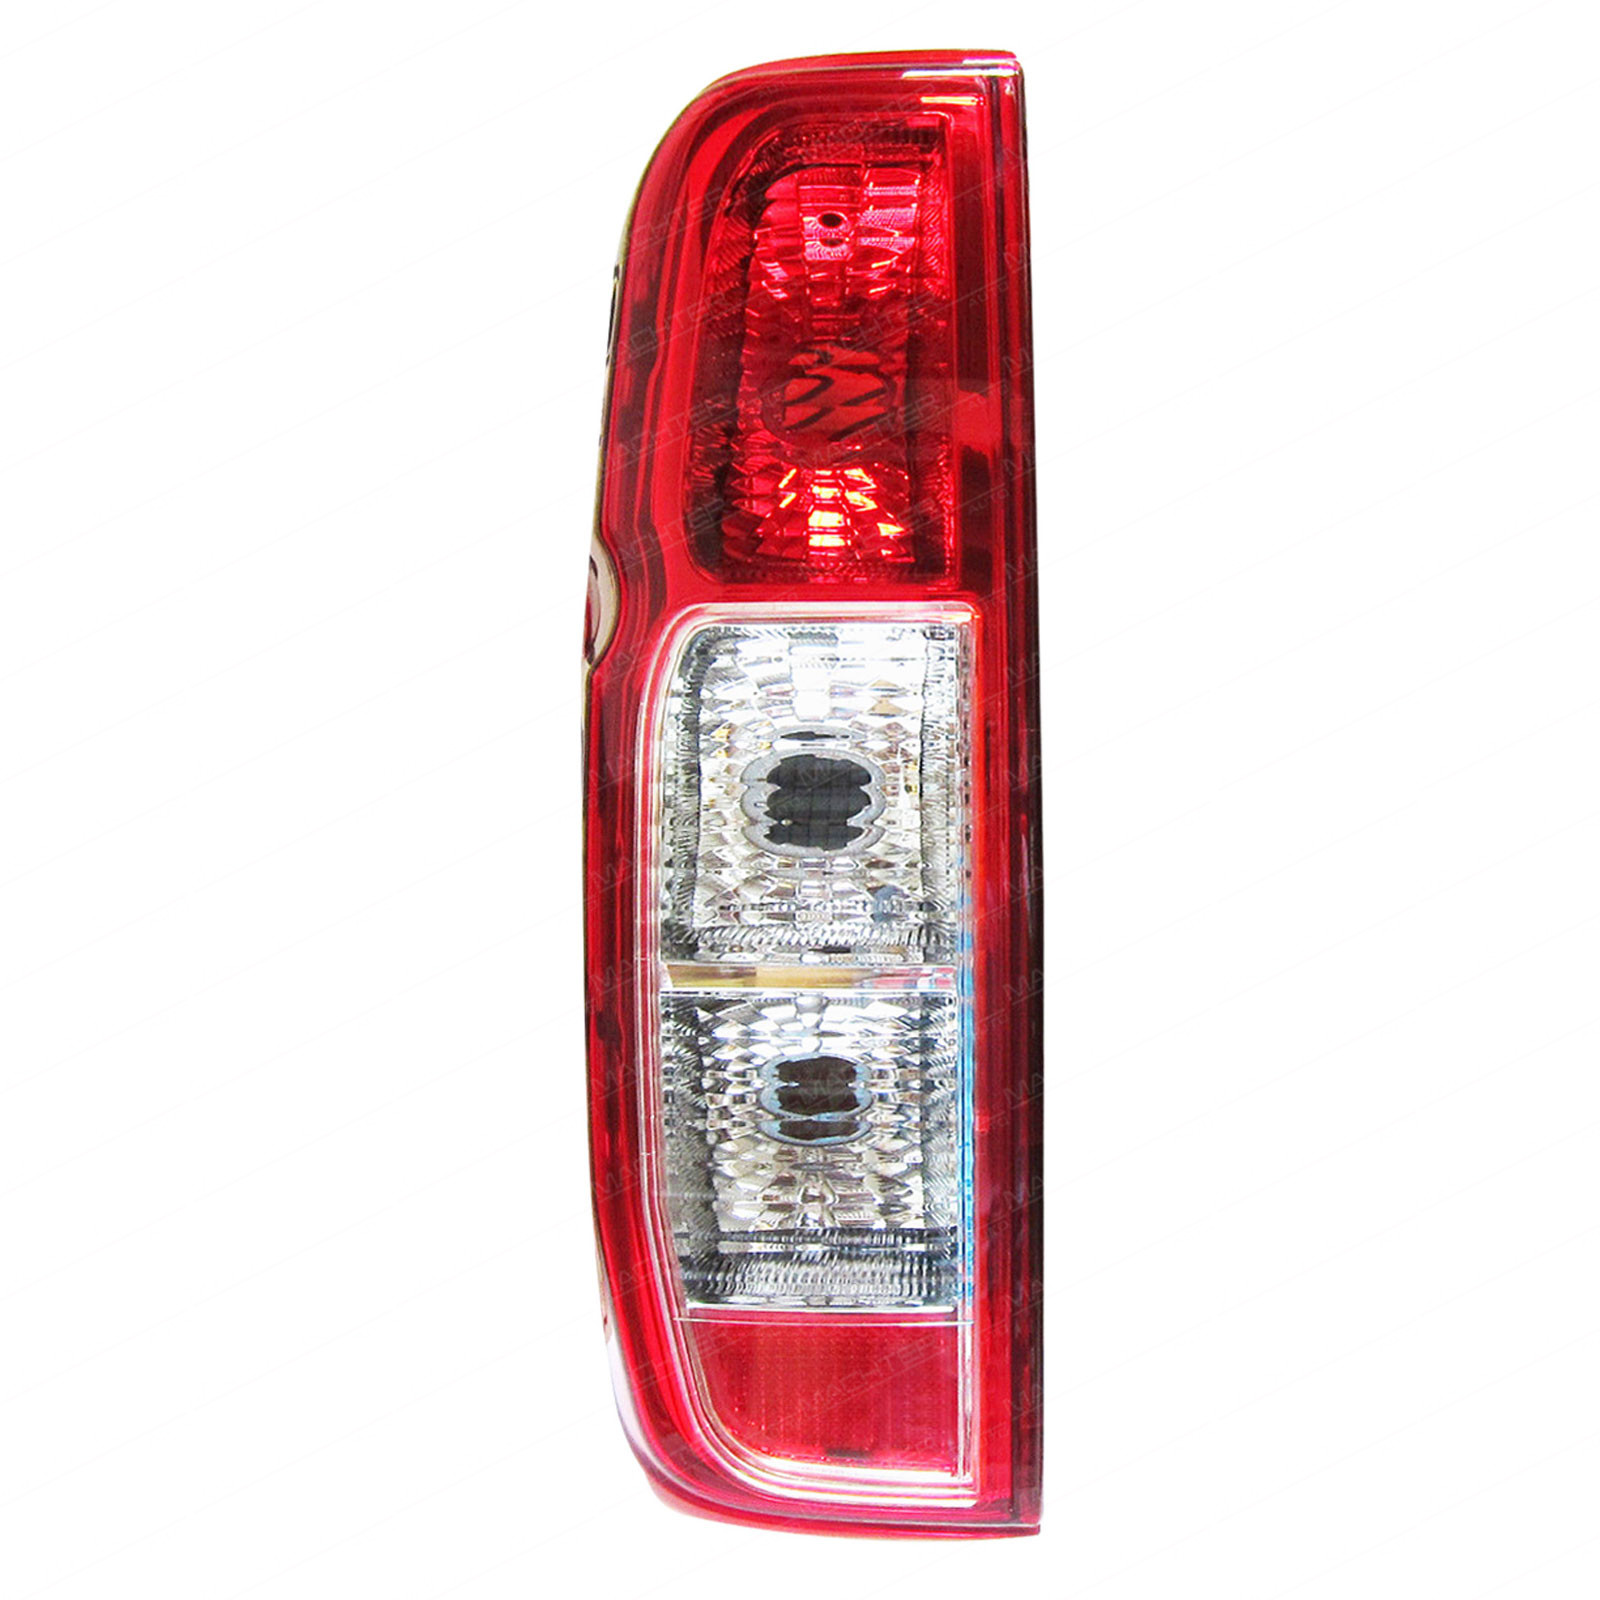 Tail Lights Rear Lamp Fit For Nissan Navara Frontier D40 05-14 ST STR STX RX image